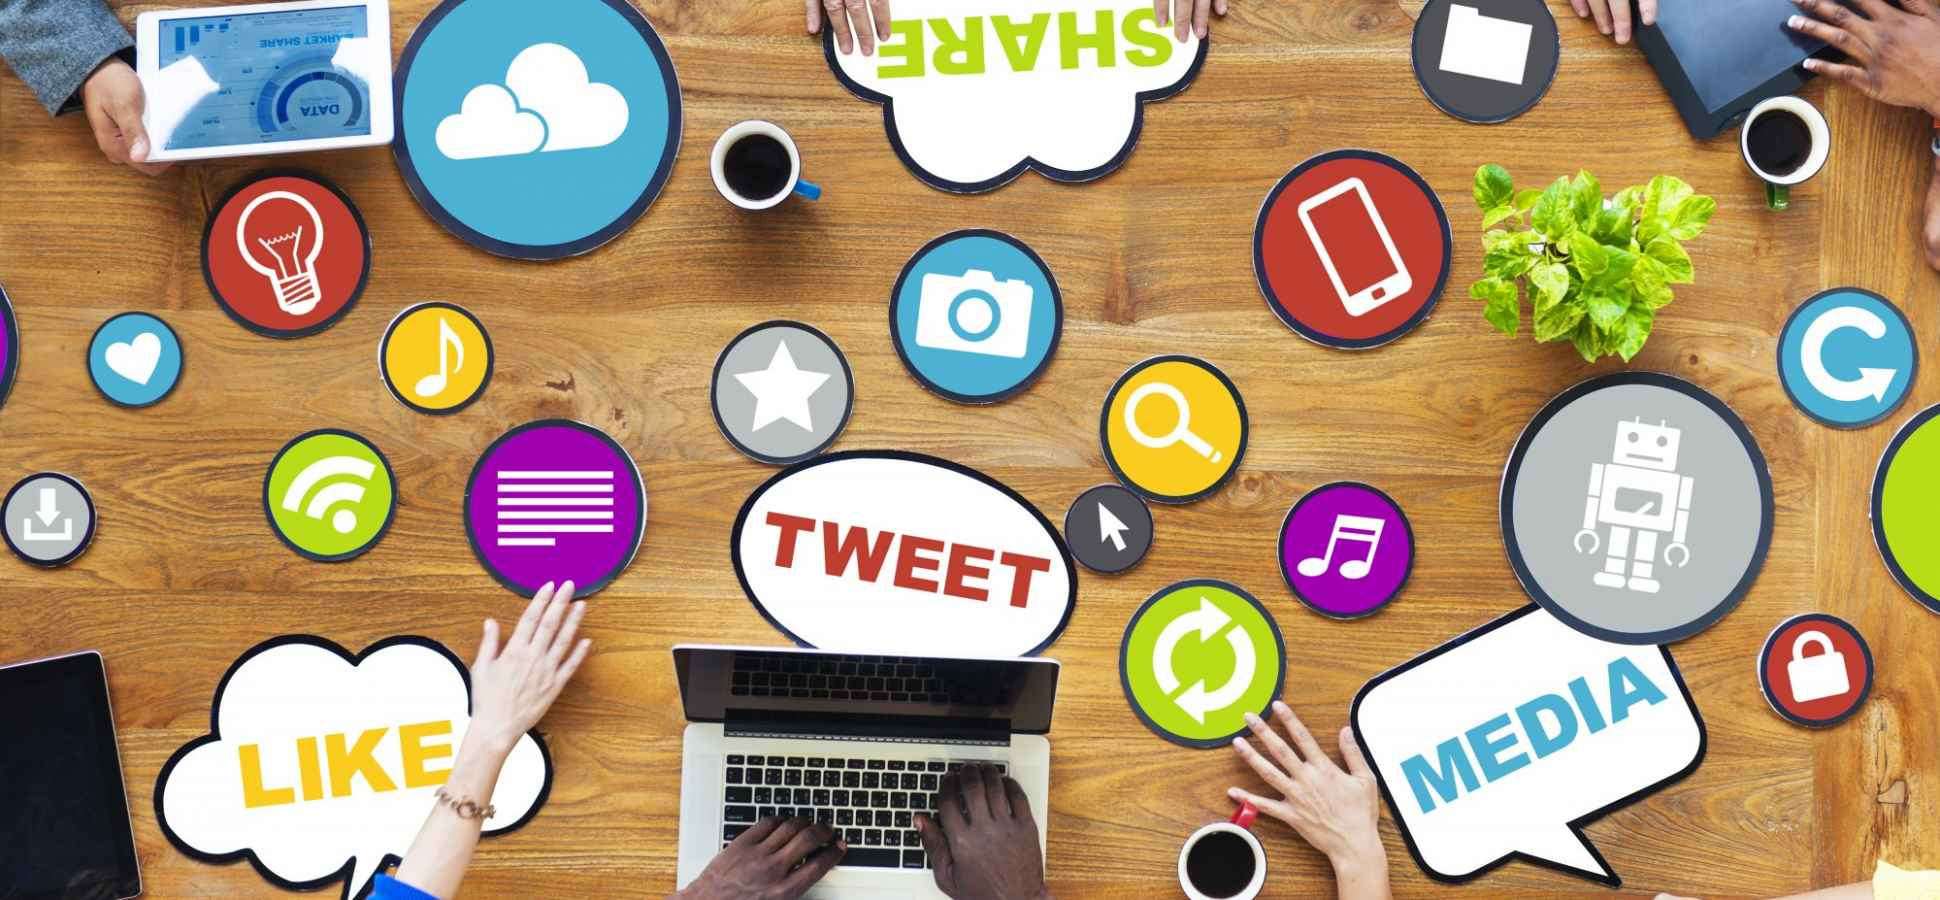 9 Tools to Simplify and Automate Social Media